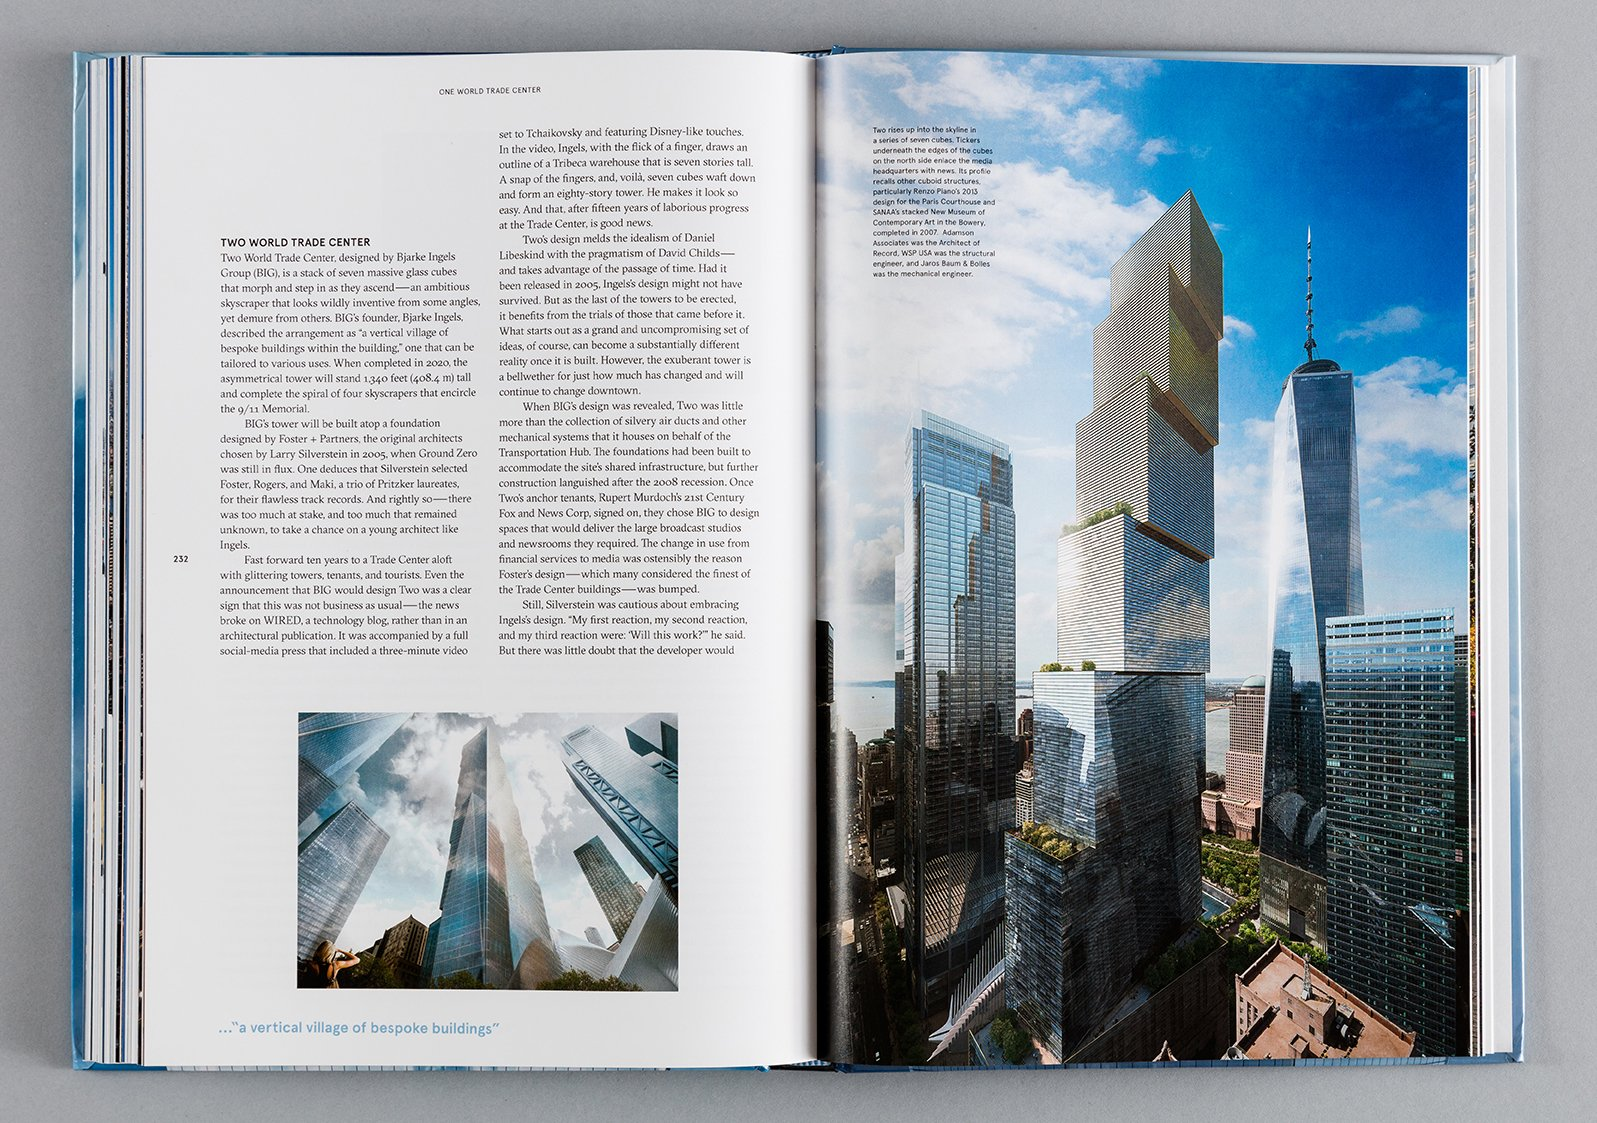 one world trade center biography of the building judith dupré